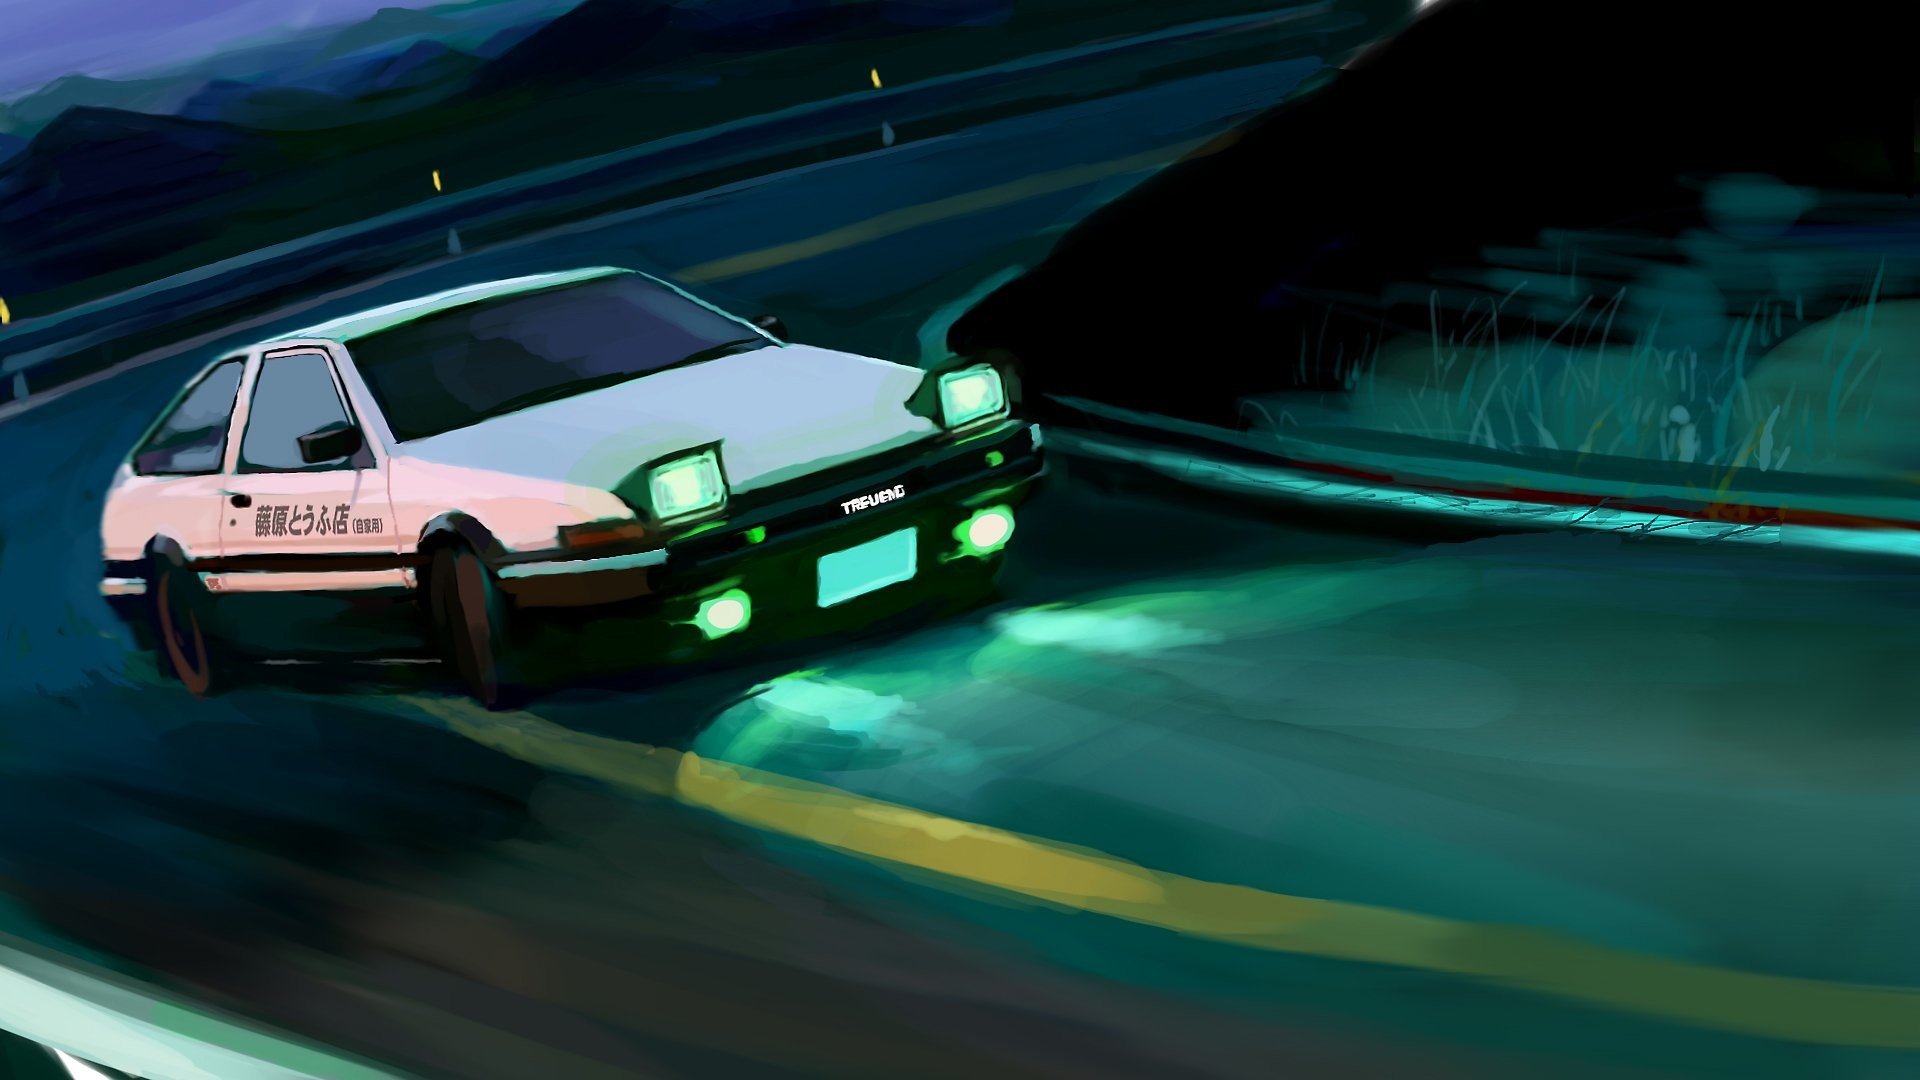 72 Initial D Wallpapers on WallpaperPlay 1920x1080